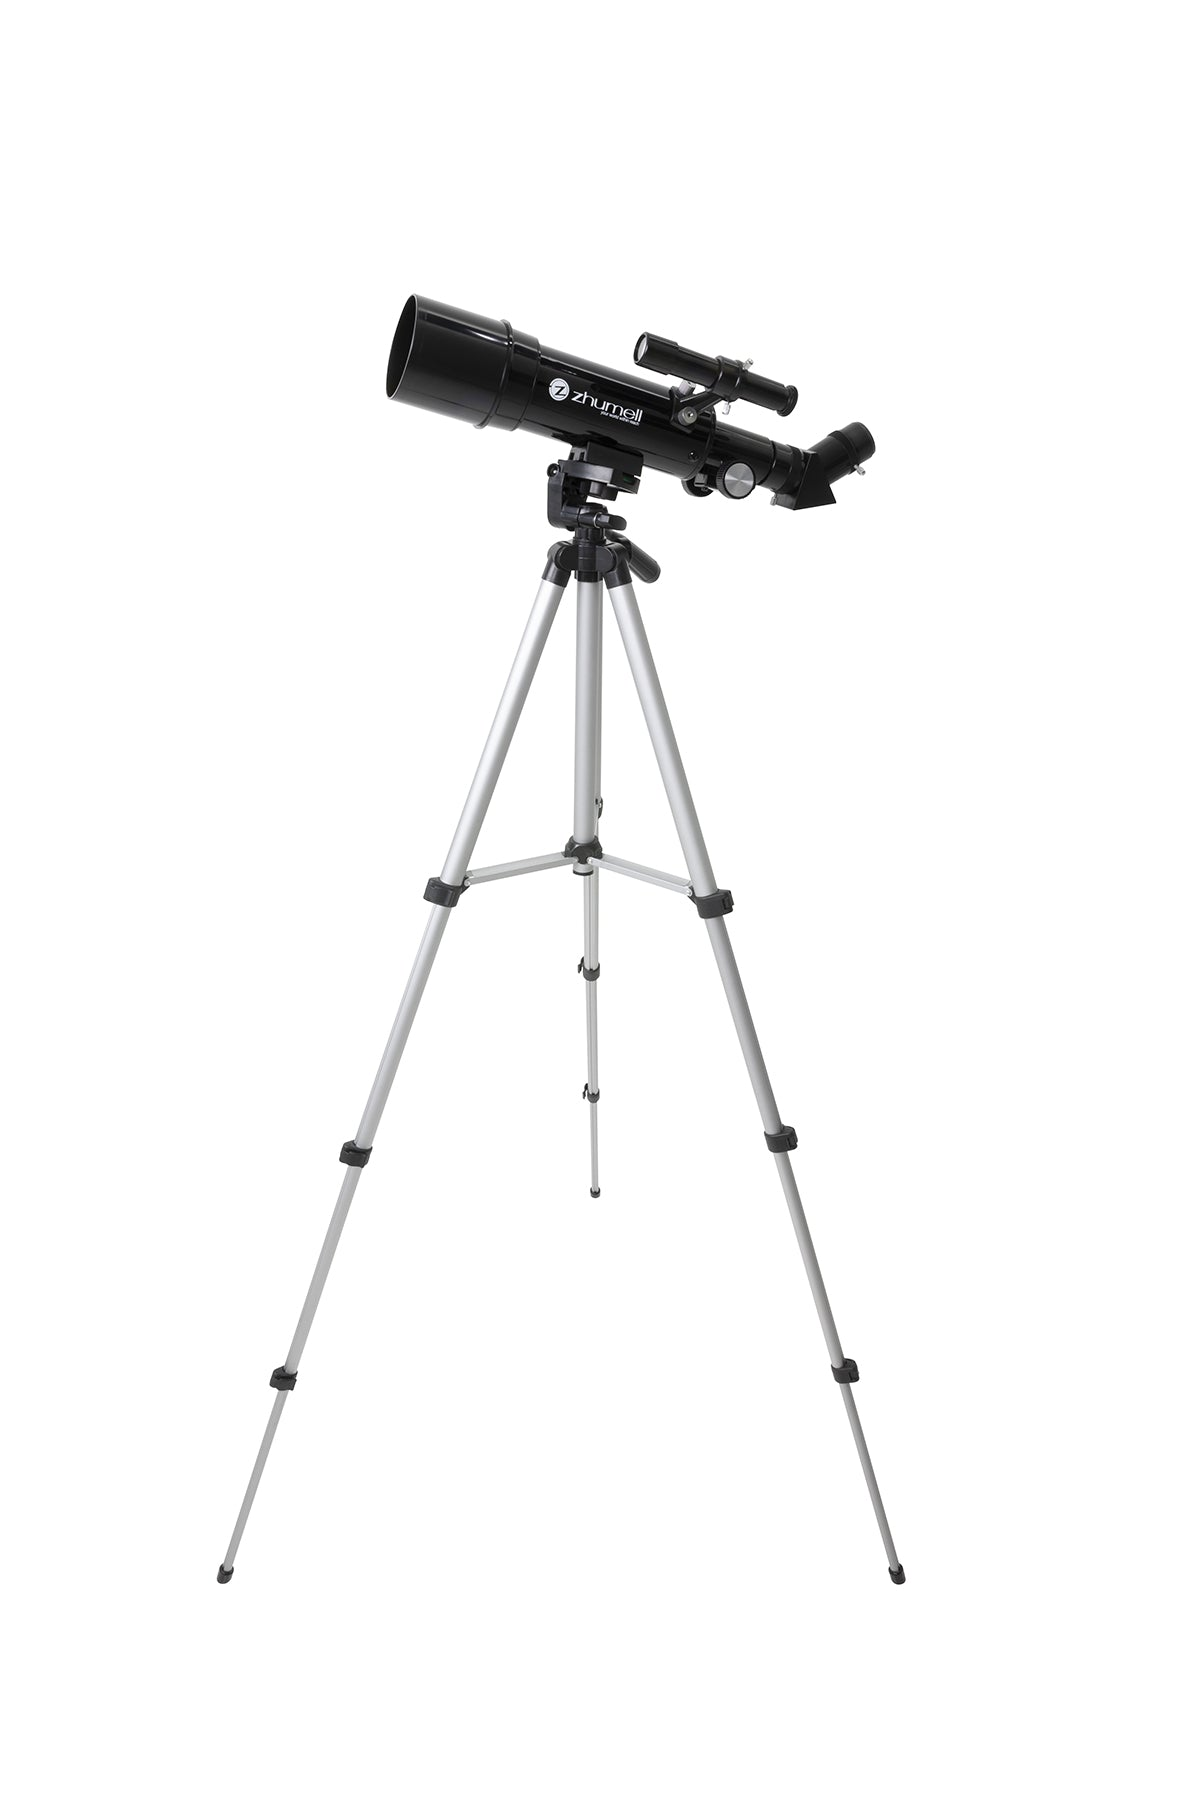 Zhumell Portable 60mm AZ Refractor Telescope with